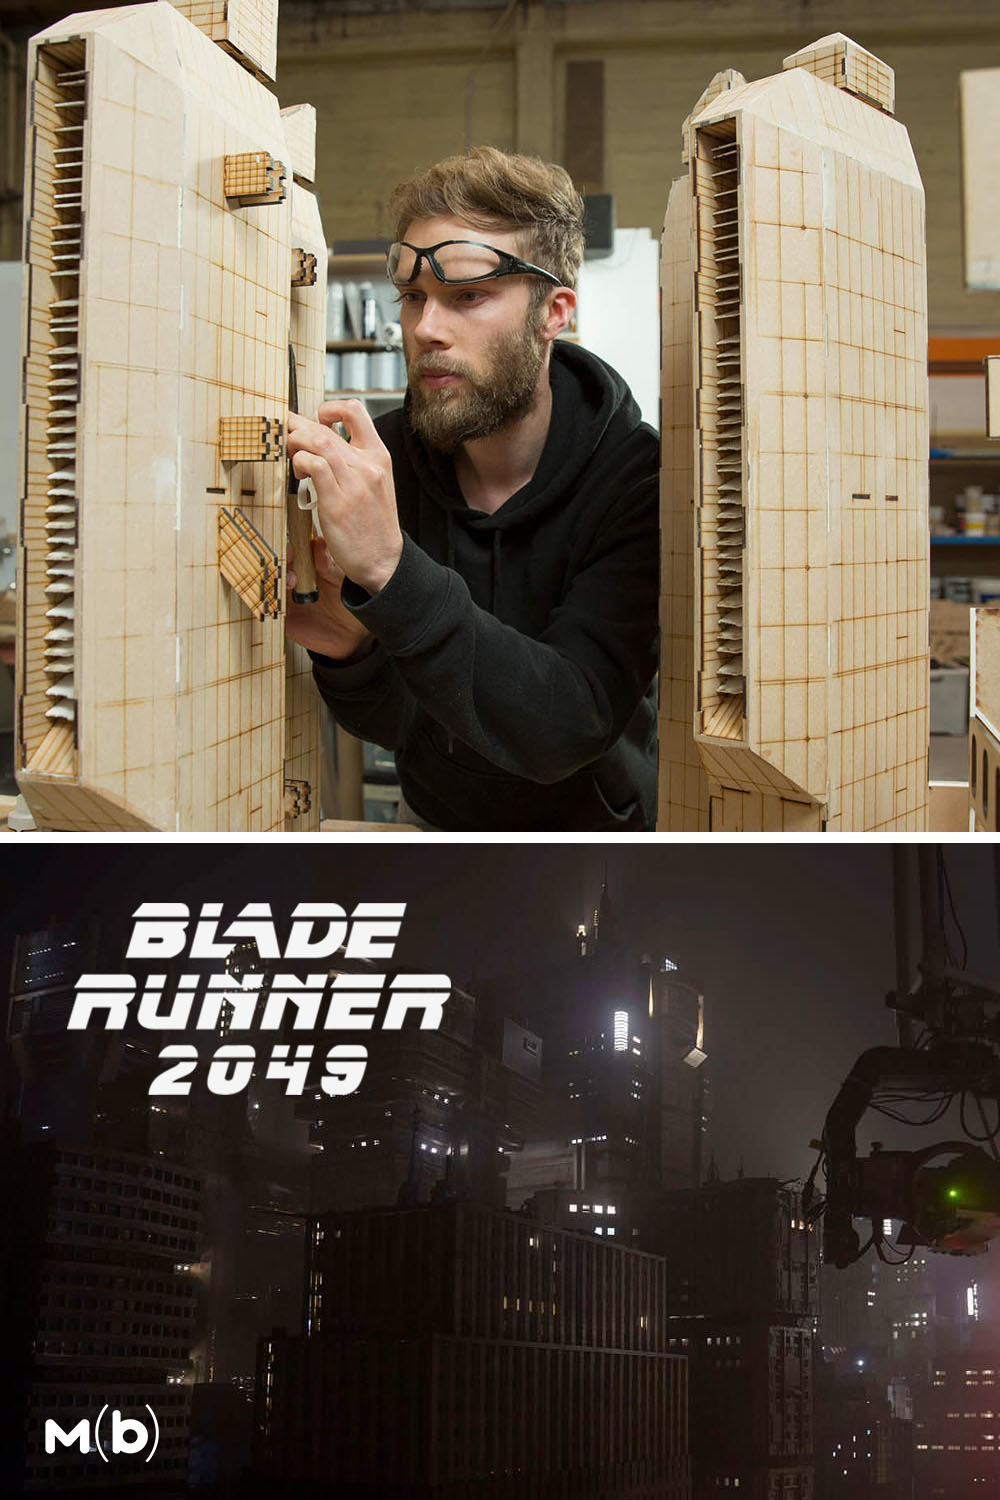 How the sets for Blade Runner 2049 were built with Rob Chesney #wetaworkshop #setdesign